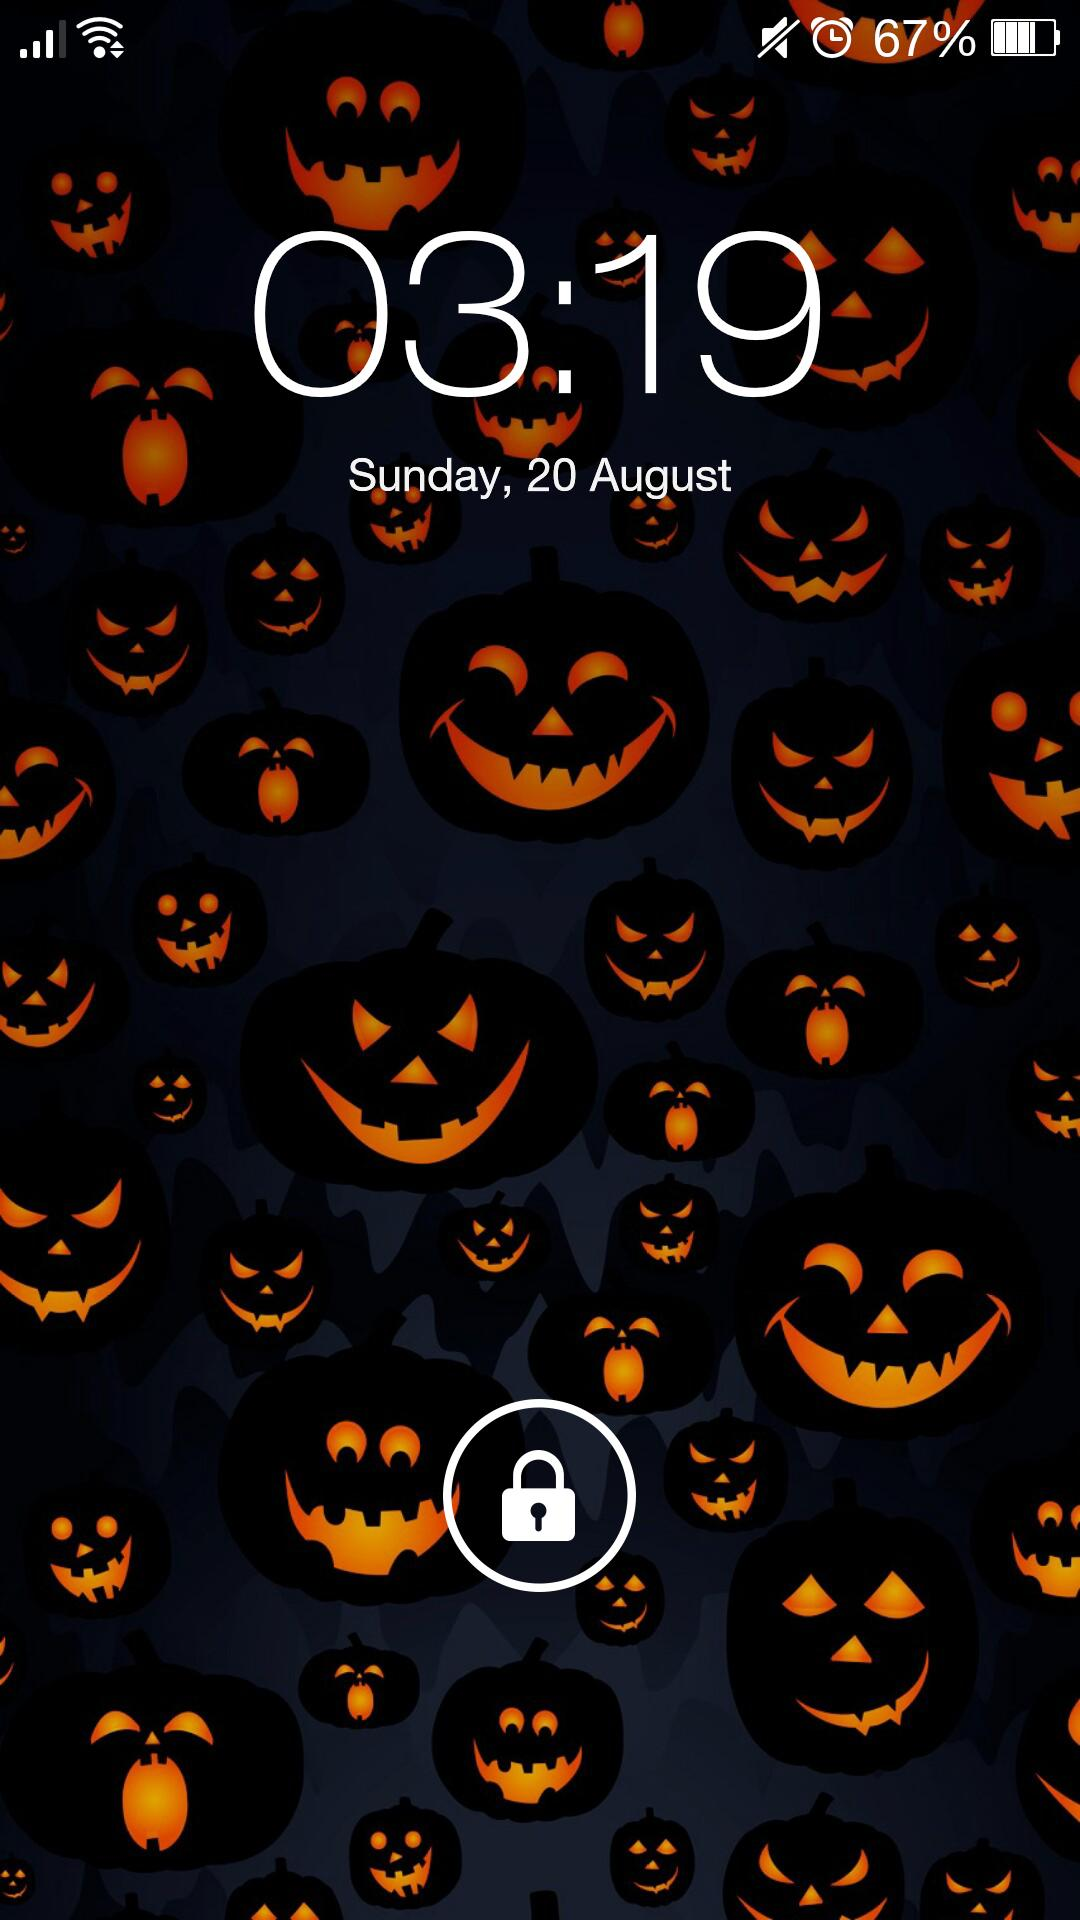 Halloween Night Wallpapers Scary Pumbkin 4k 2017 For